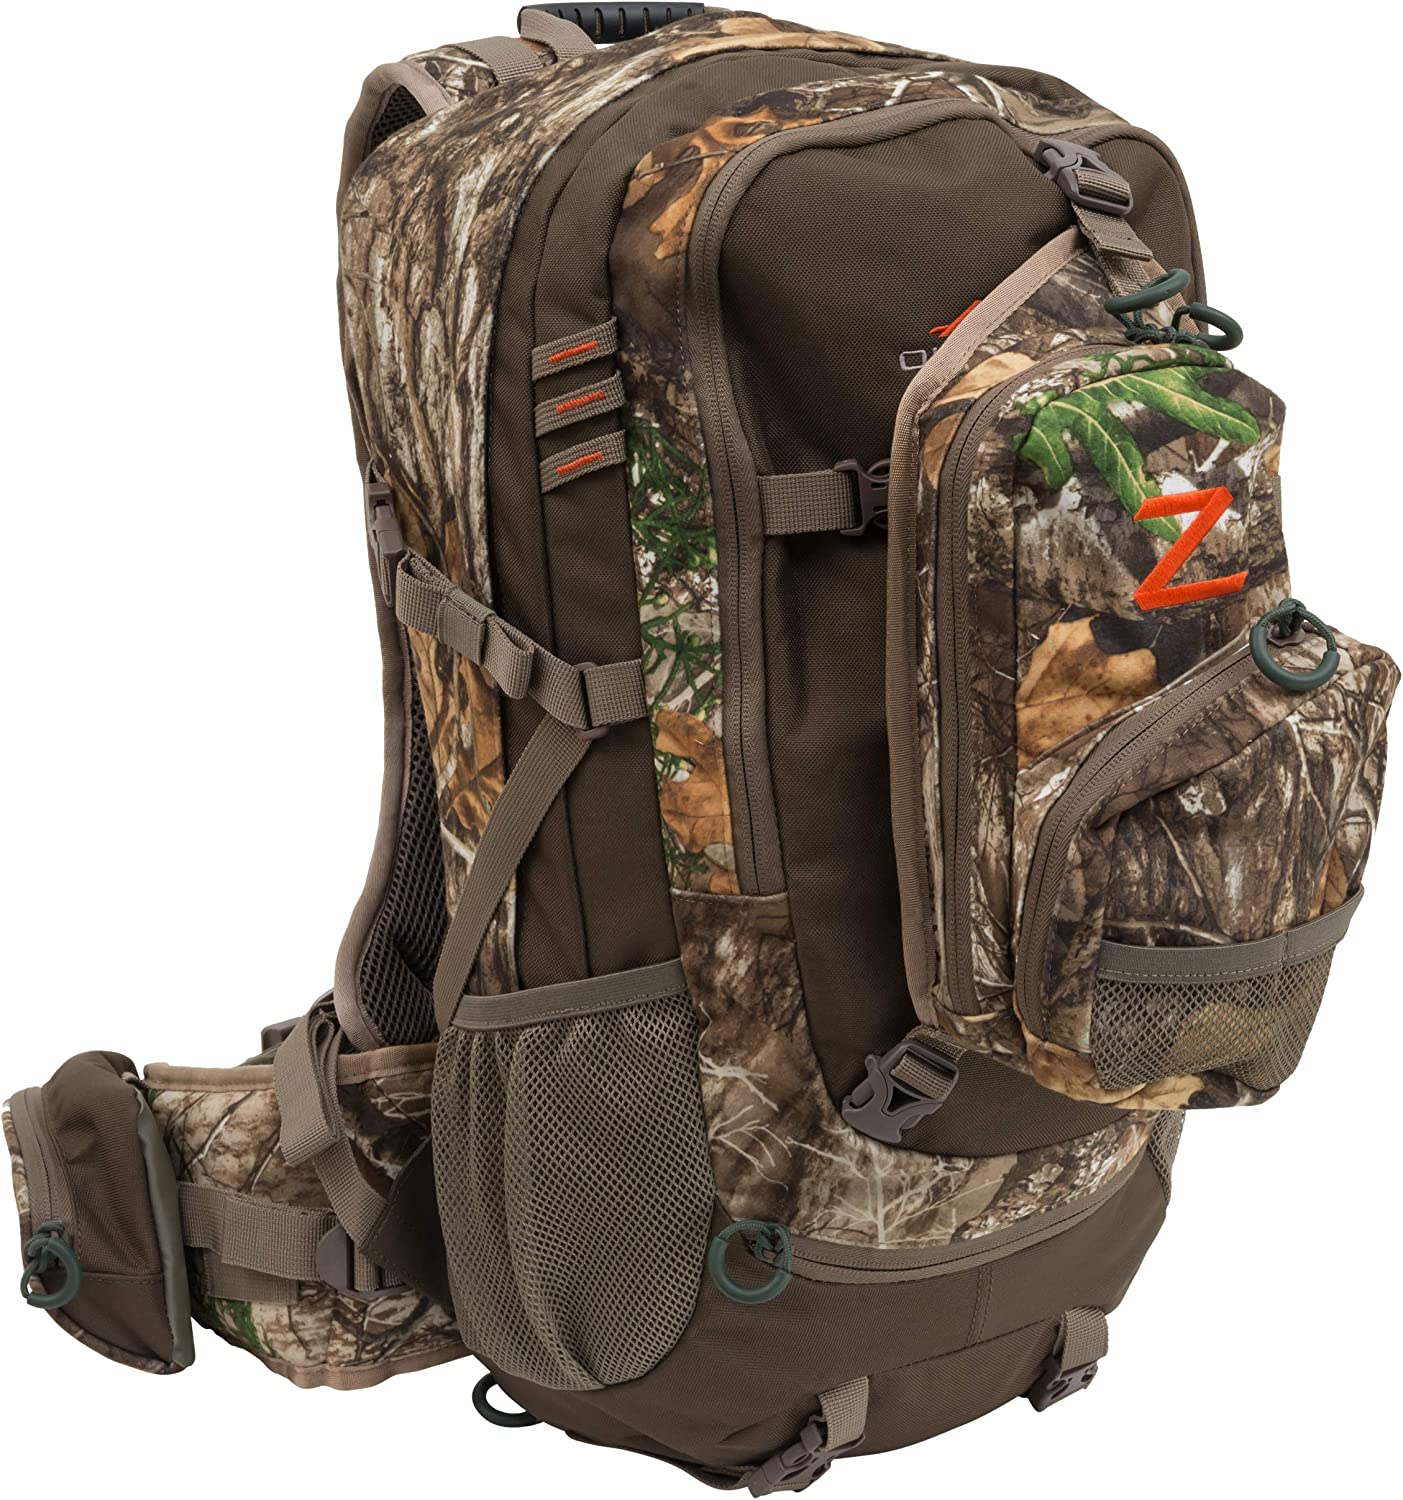 ALPS OutdoorZ Crossfire, Realtree Edge